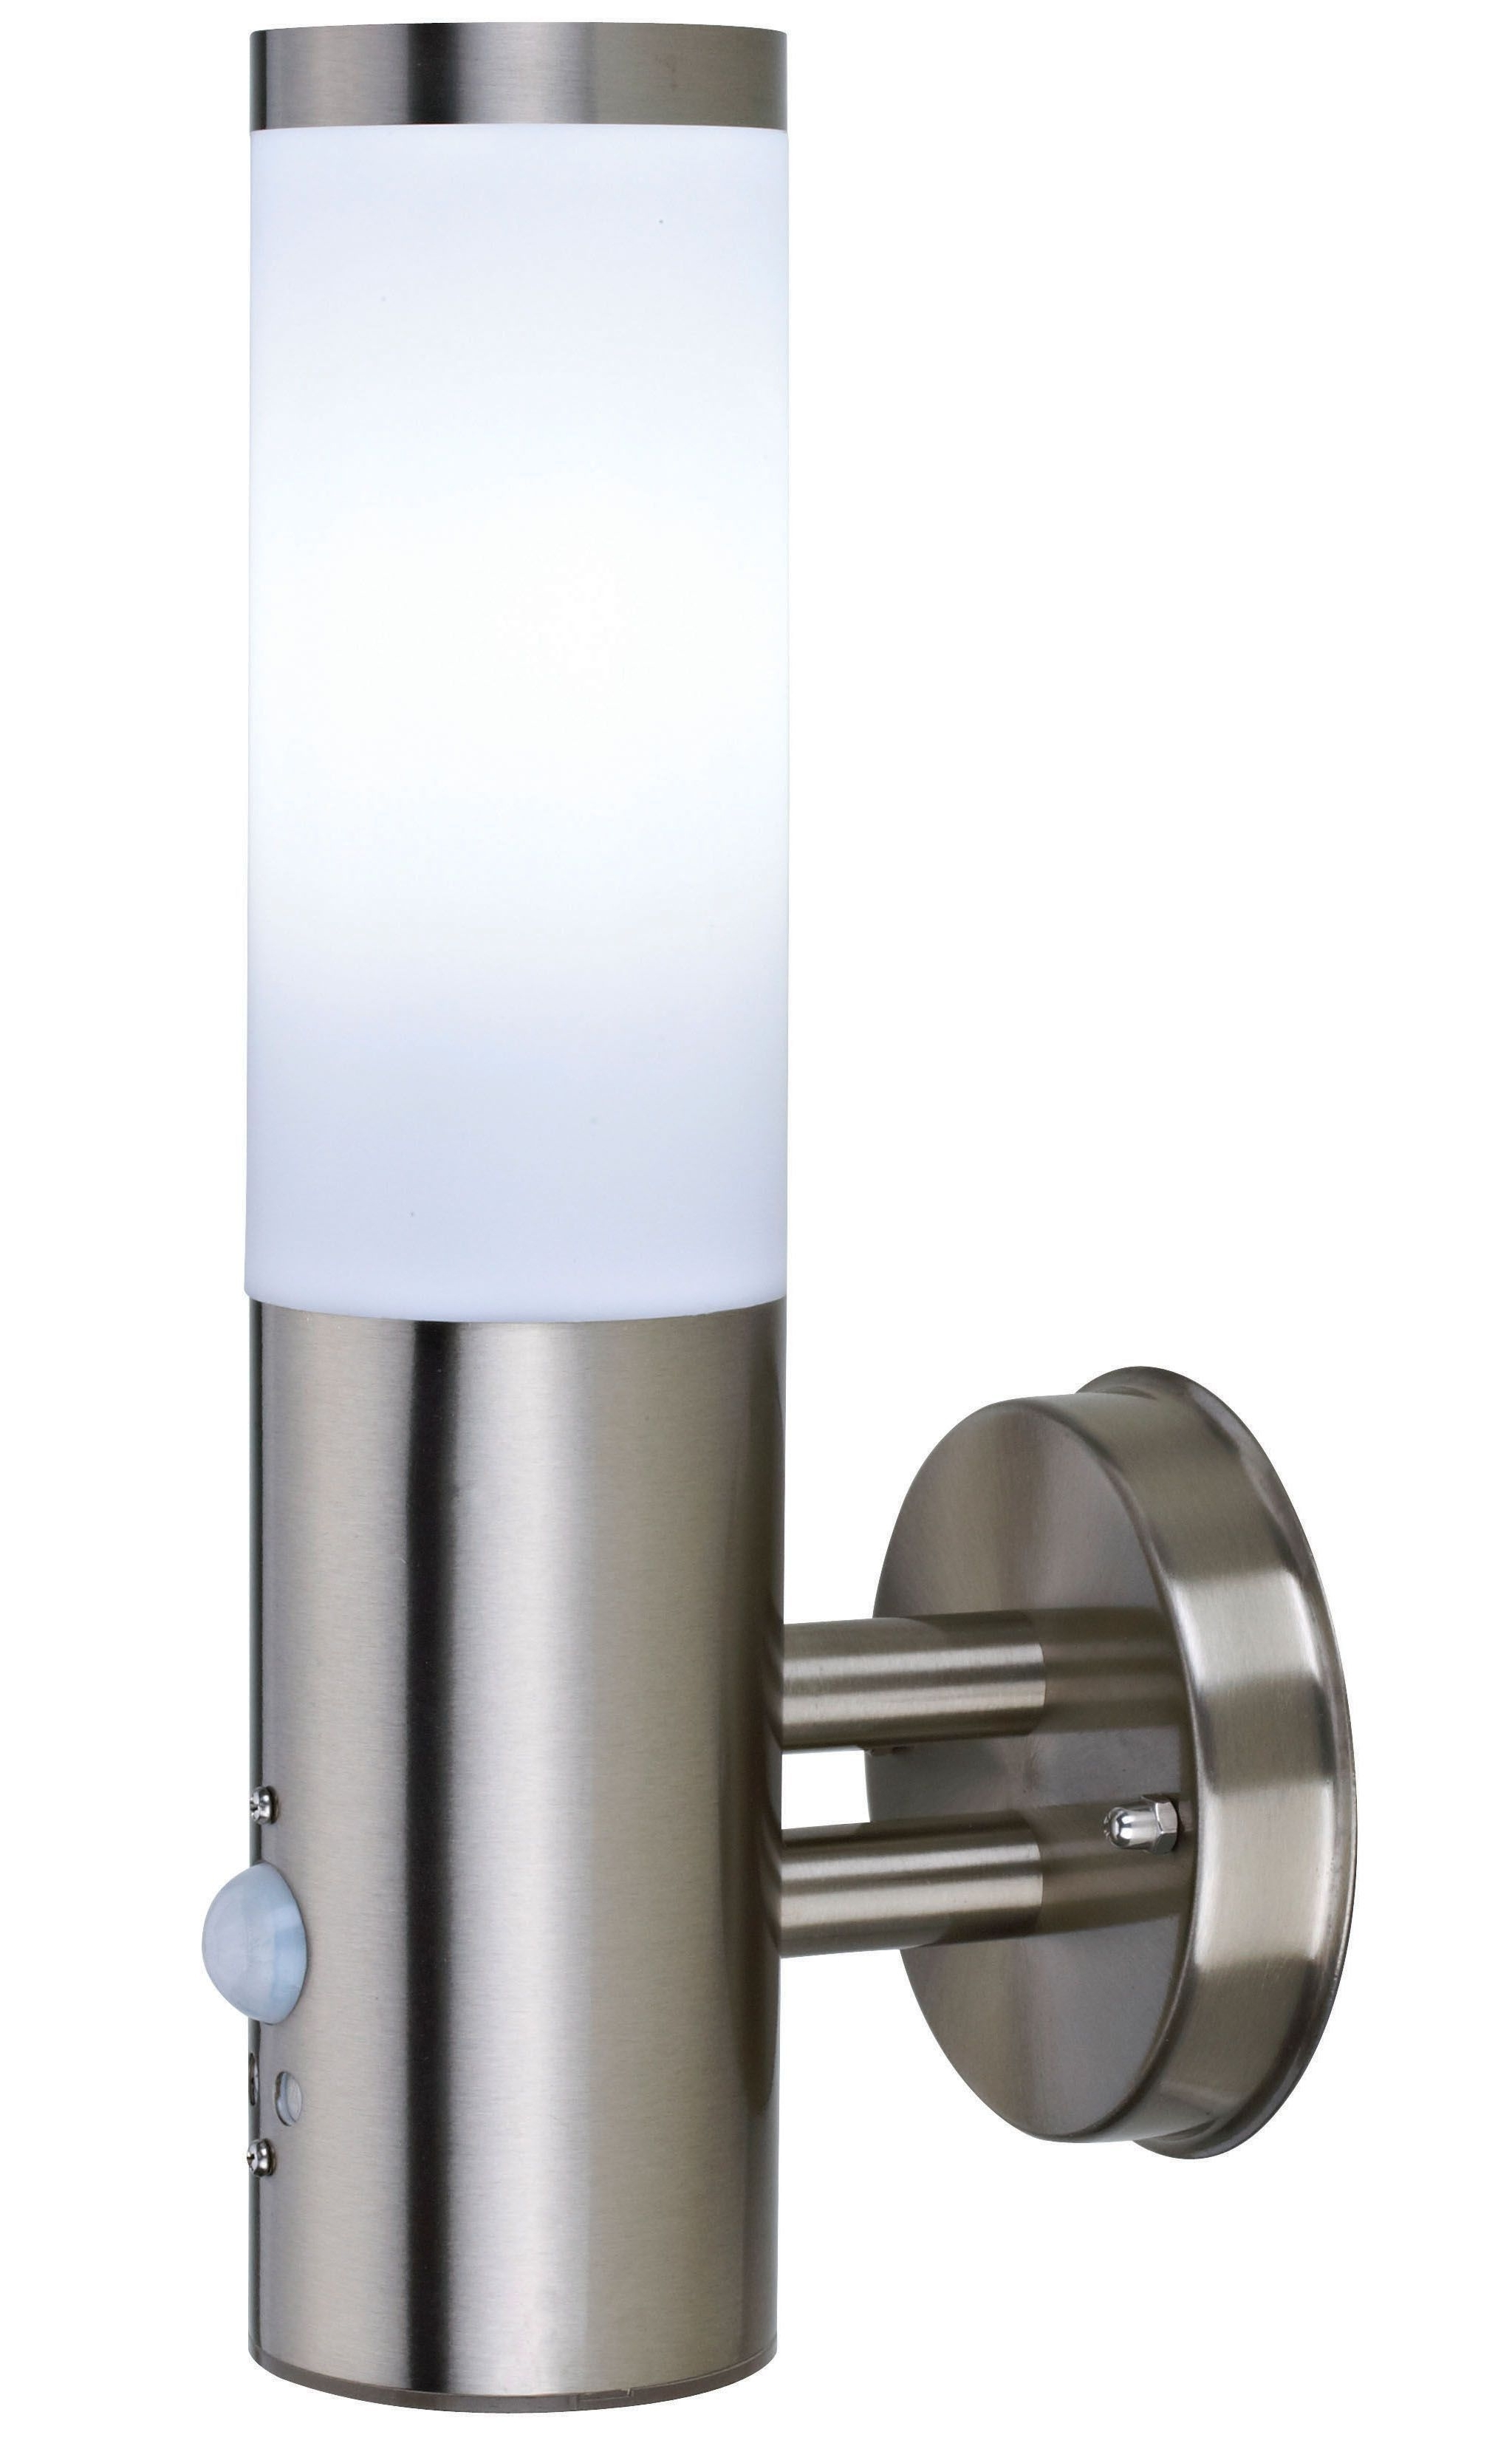 Newest Blooma Nomos Stainless Steel 6W Mains Powered External Pir Wall Throughout Outdoor Pir Lanterns (Gallery 20 of 20)